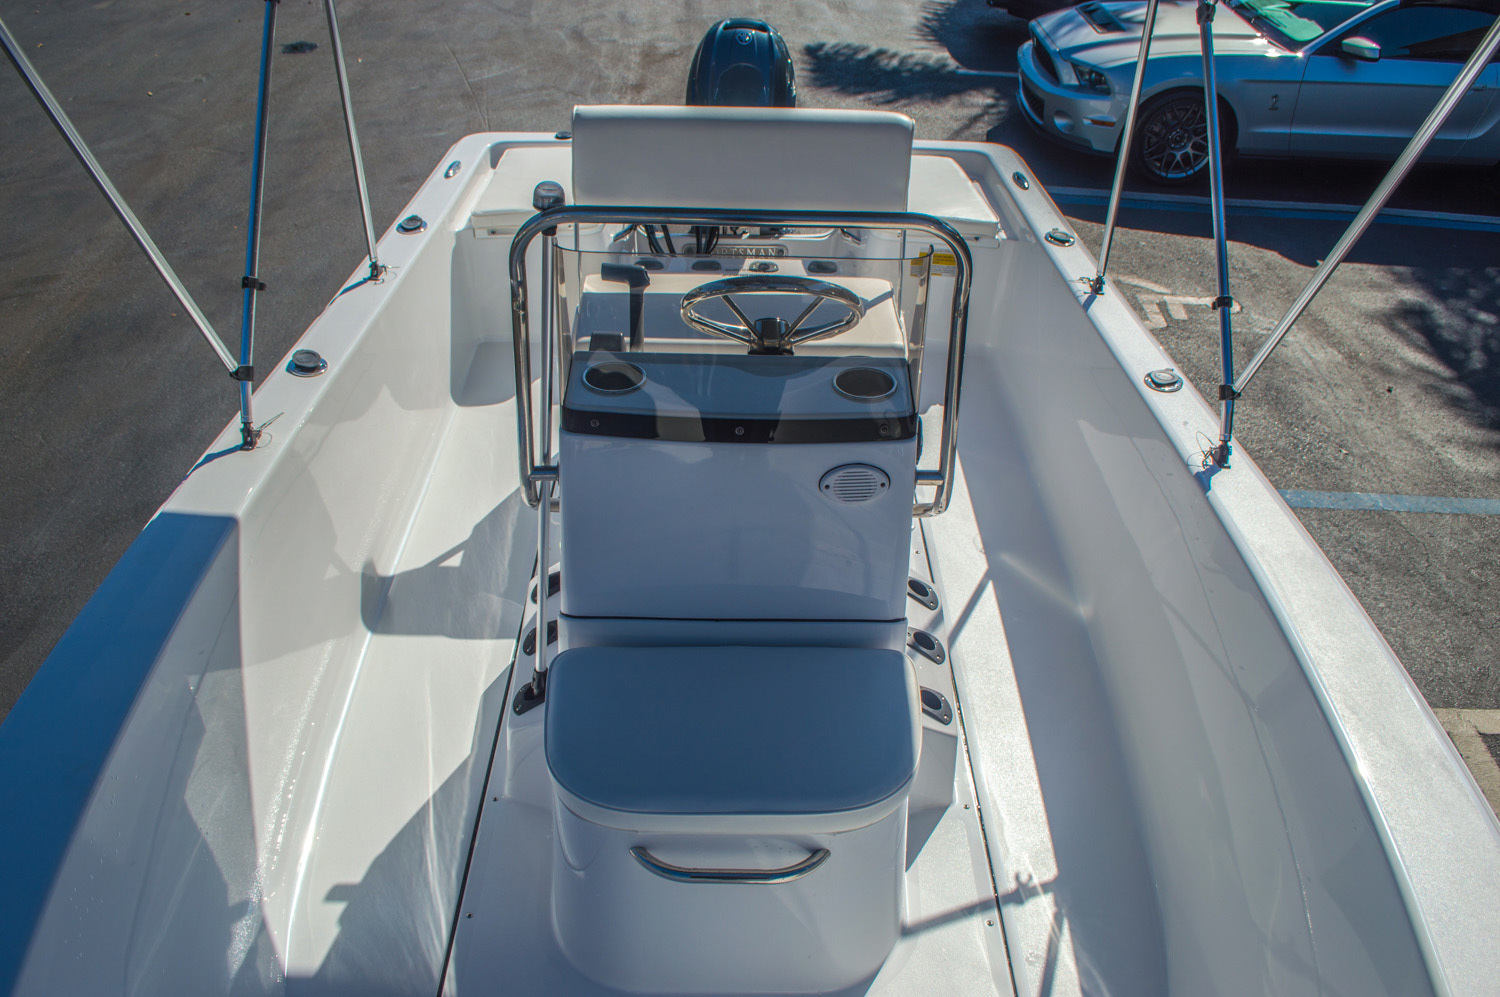 Thumbnail 33 for New 2016 Sportsman 17 Island Reef boat for sale in West Palm Beach, FL